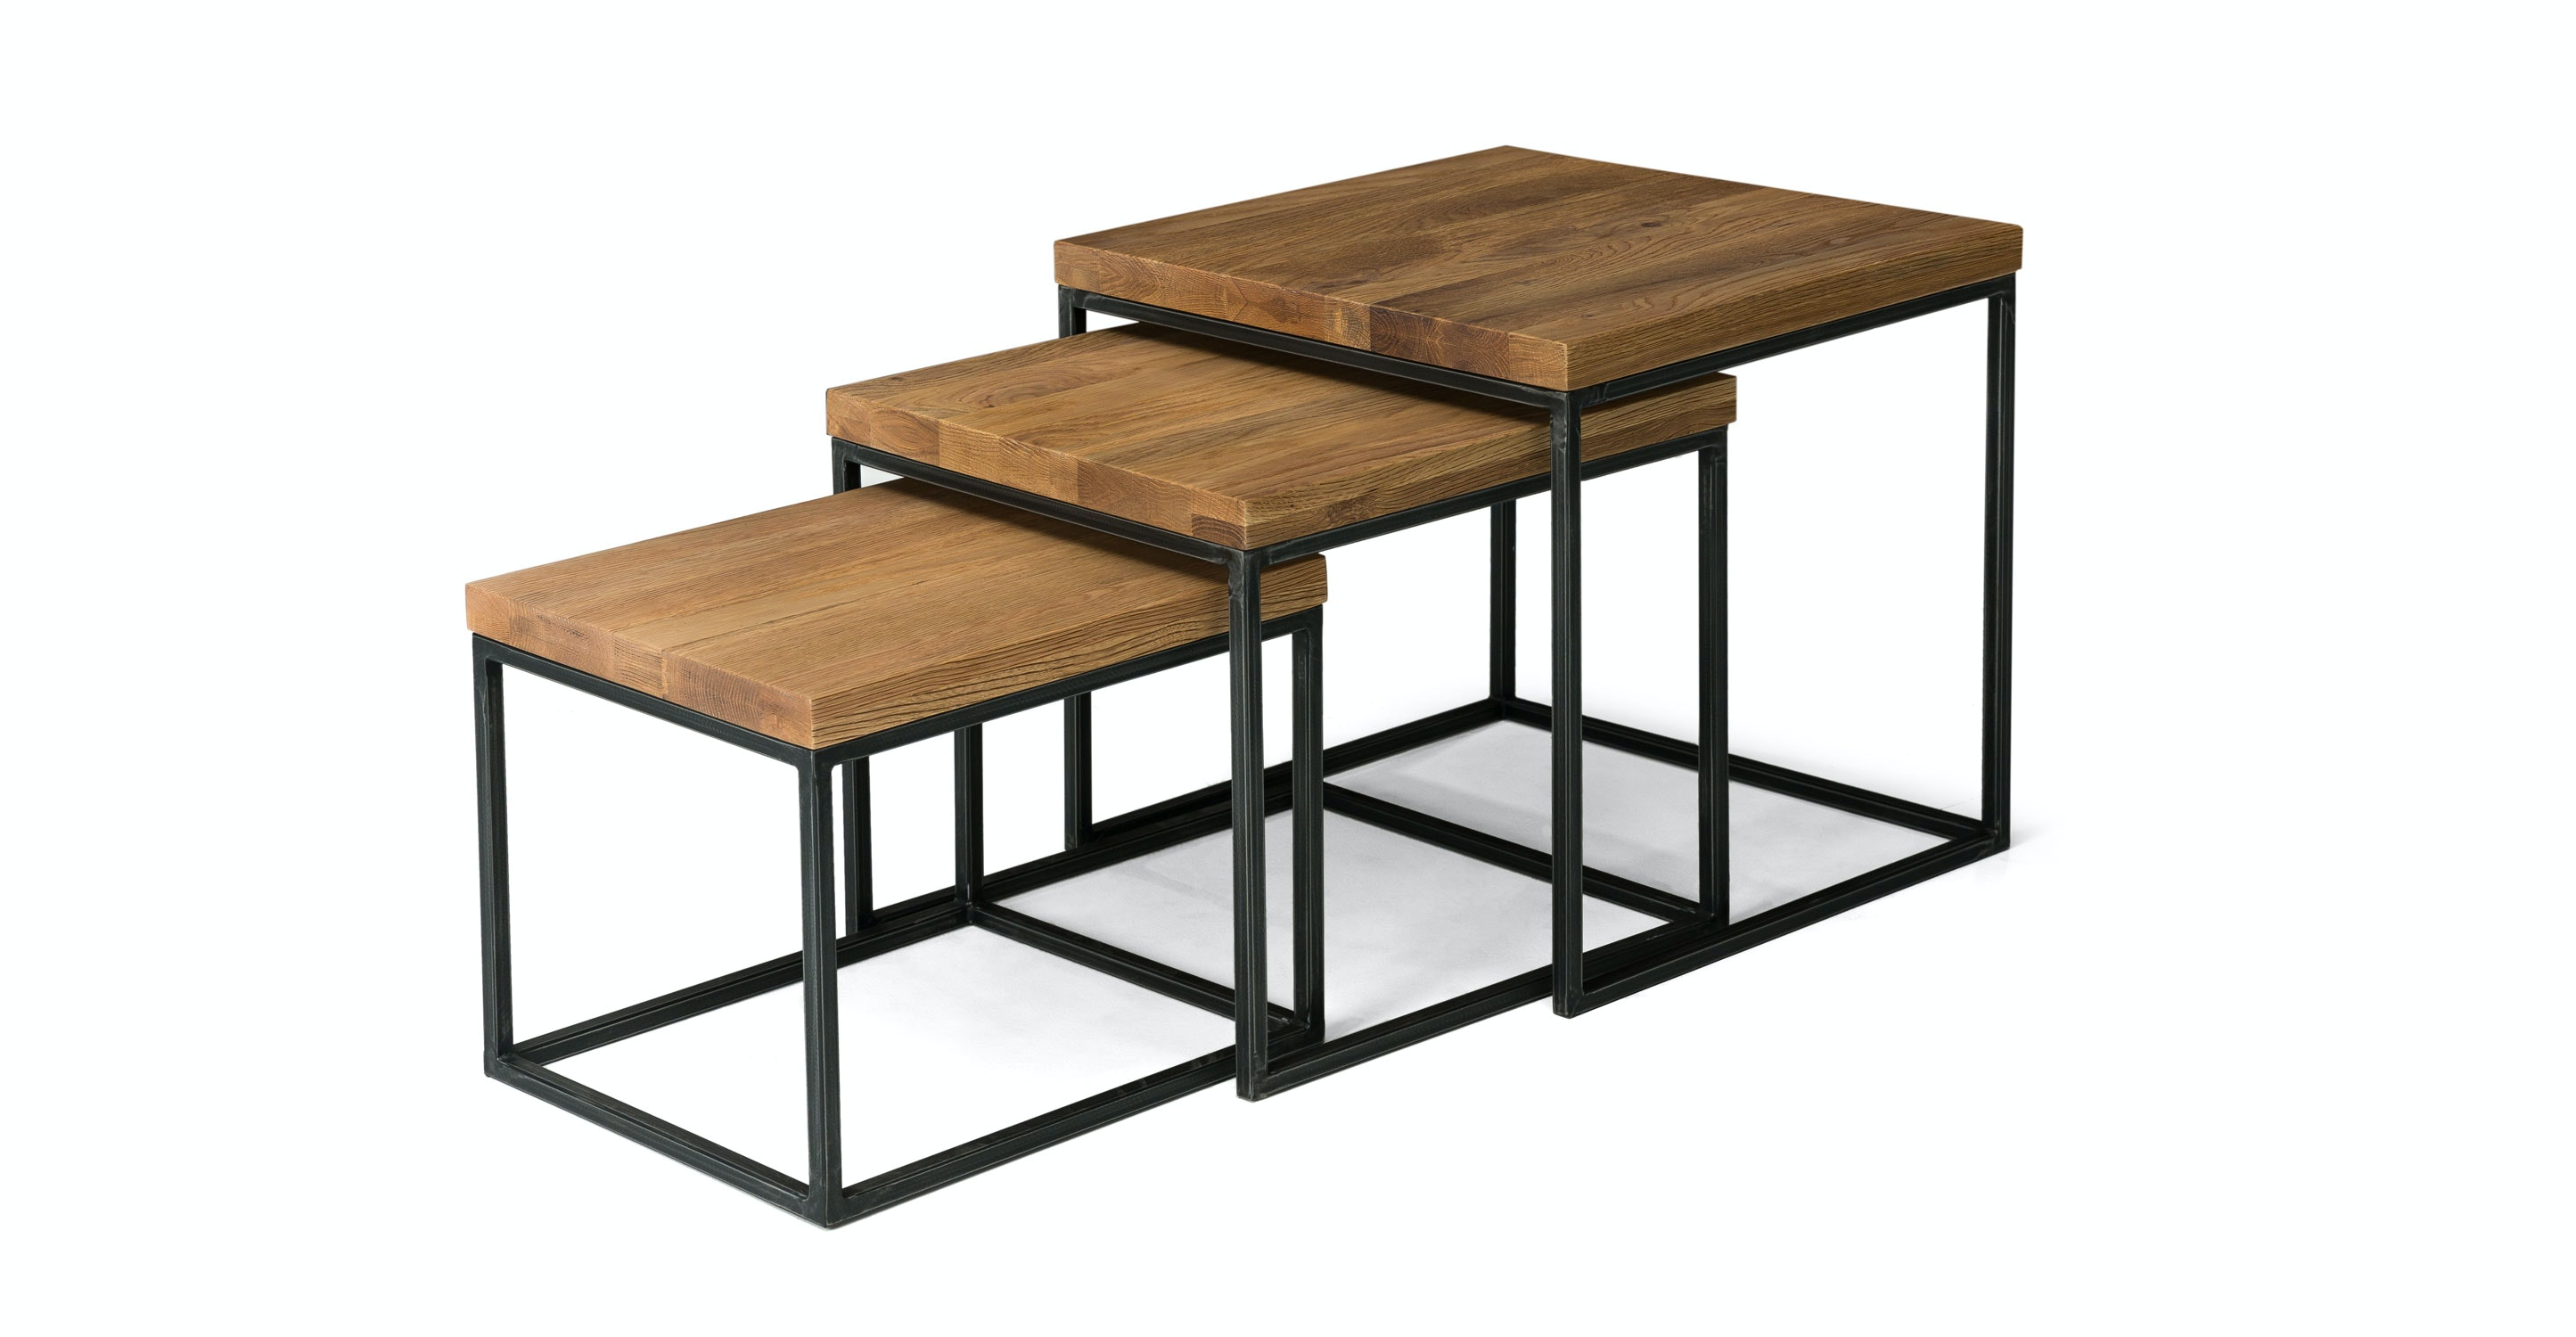 Merveilleux Taiga Oak Nesting Tables   Coffee Tables   Article | Modern, Mid Century  And Scandinavian Furniture